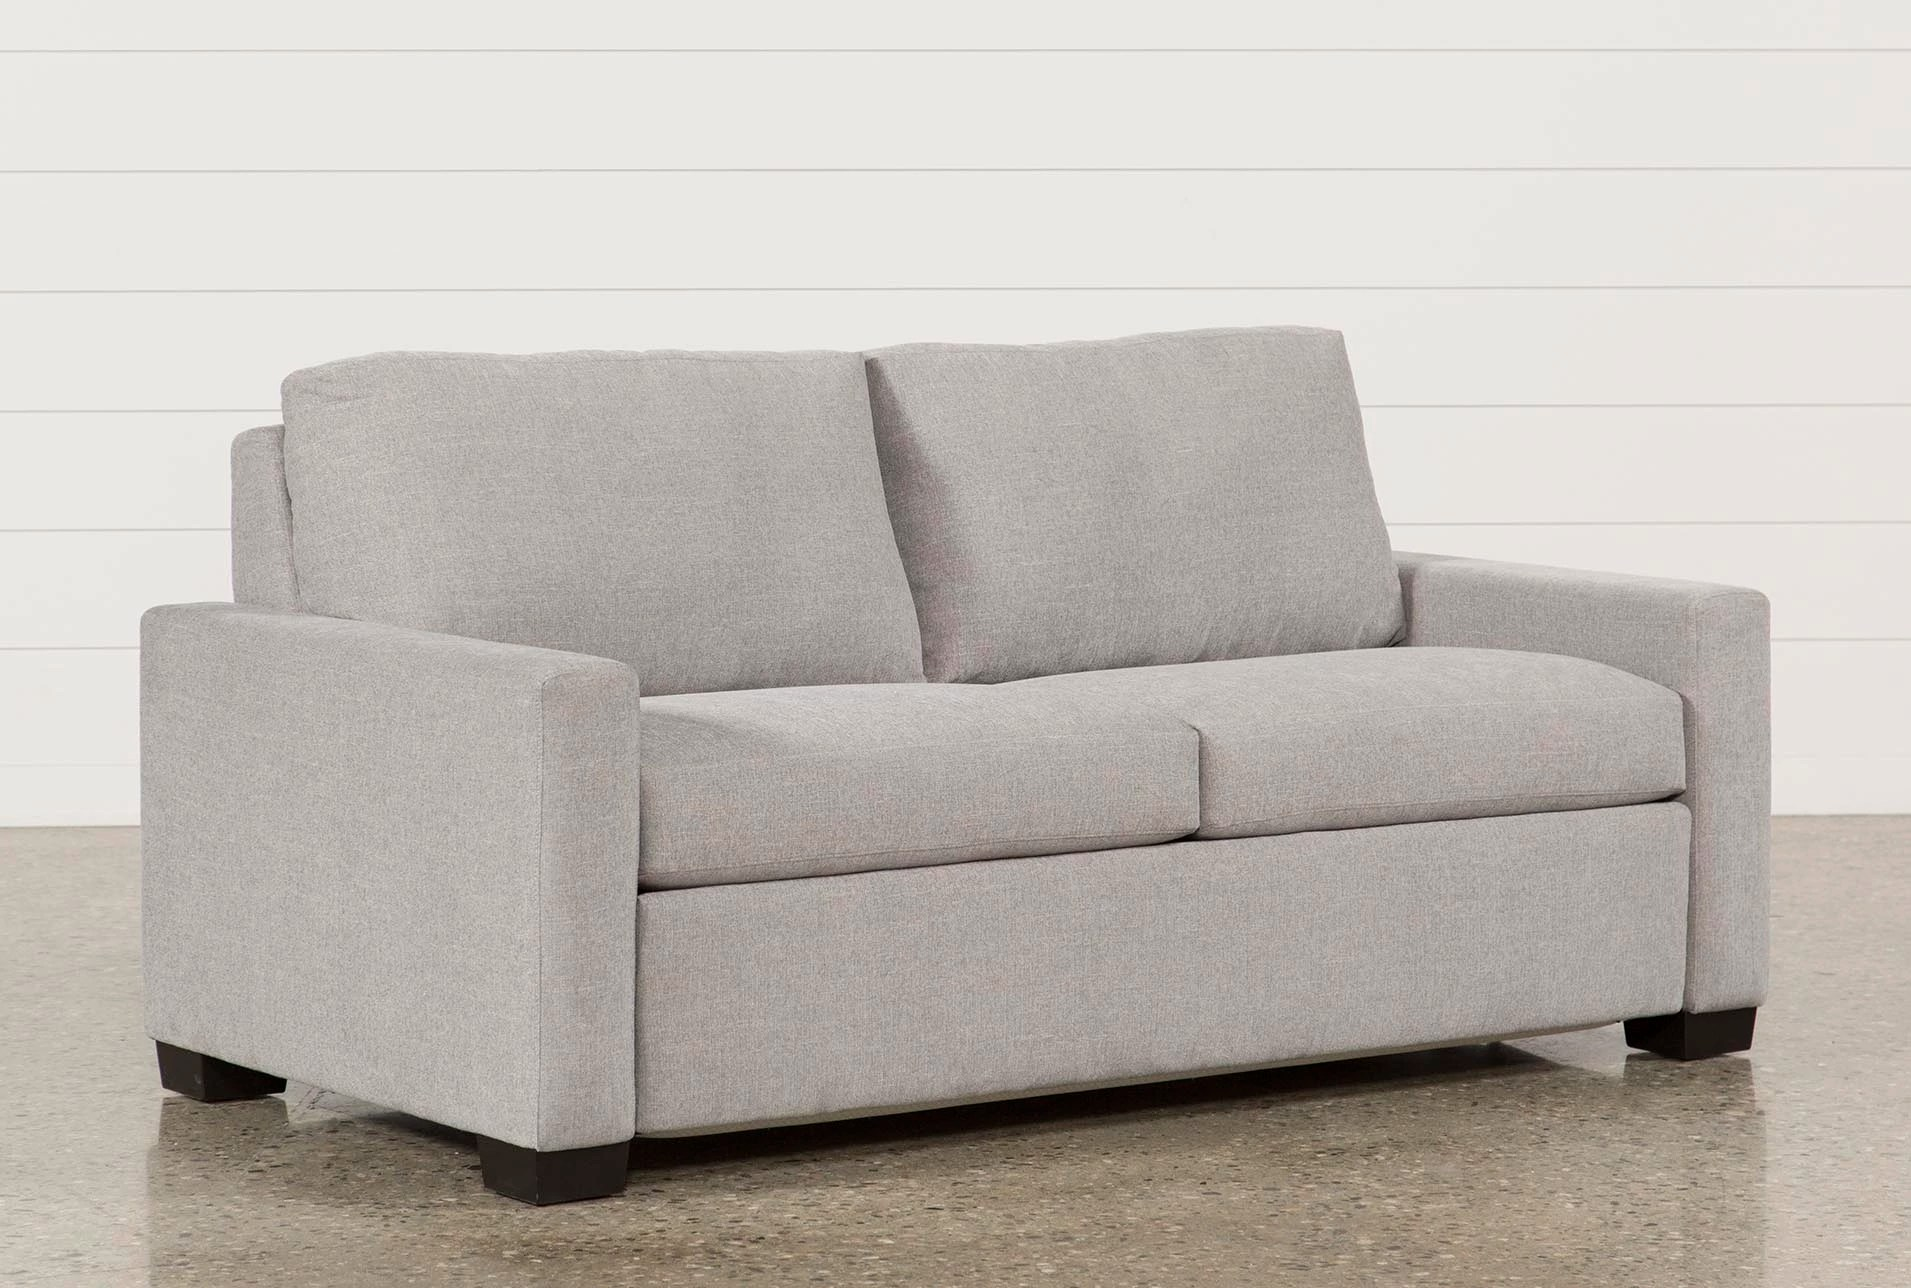 Klassische Sofas You Can Assemble Sofa Beds Sleeper Sofas Free Assembly With Delivery Living